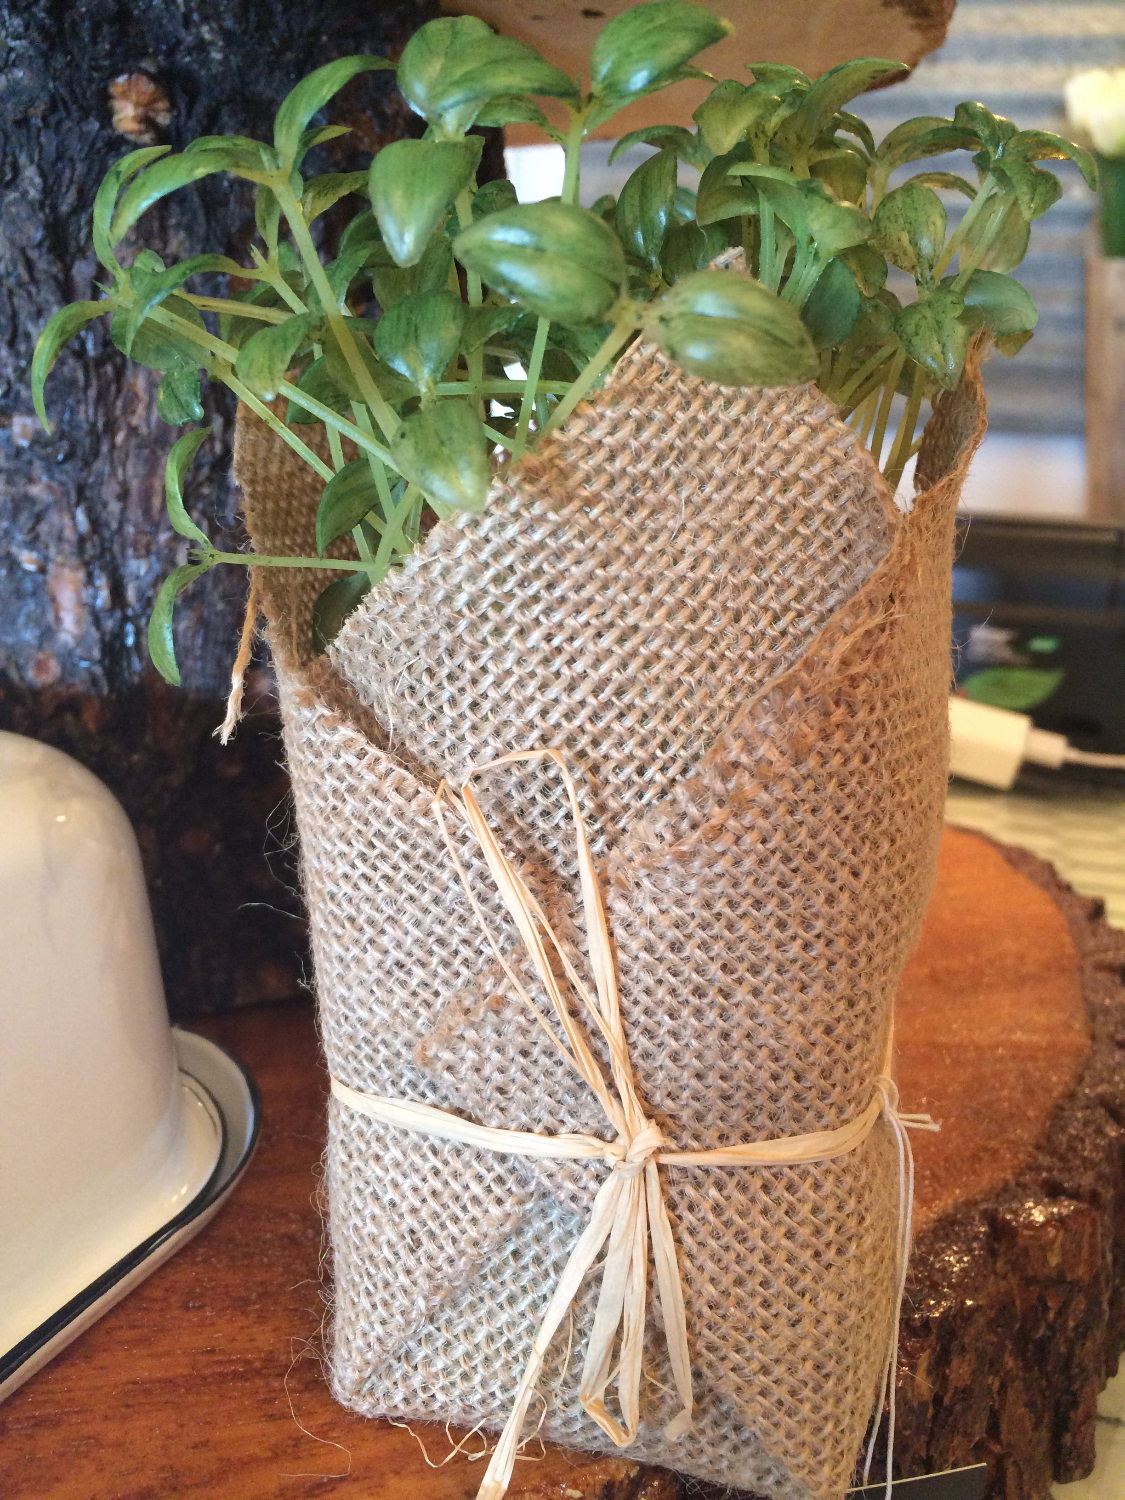 Artificial Herb in Burlap $7.00